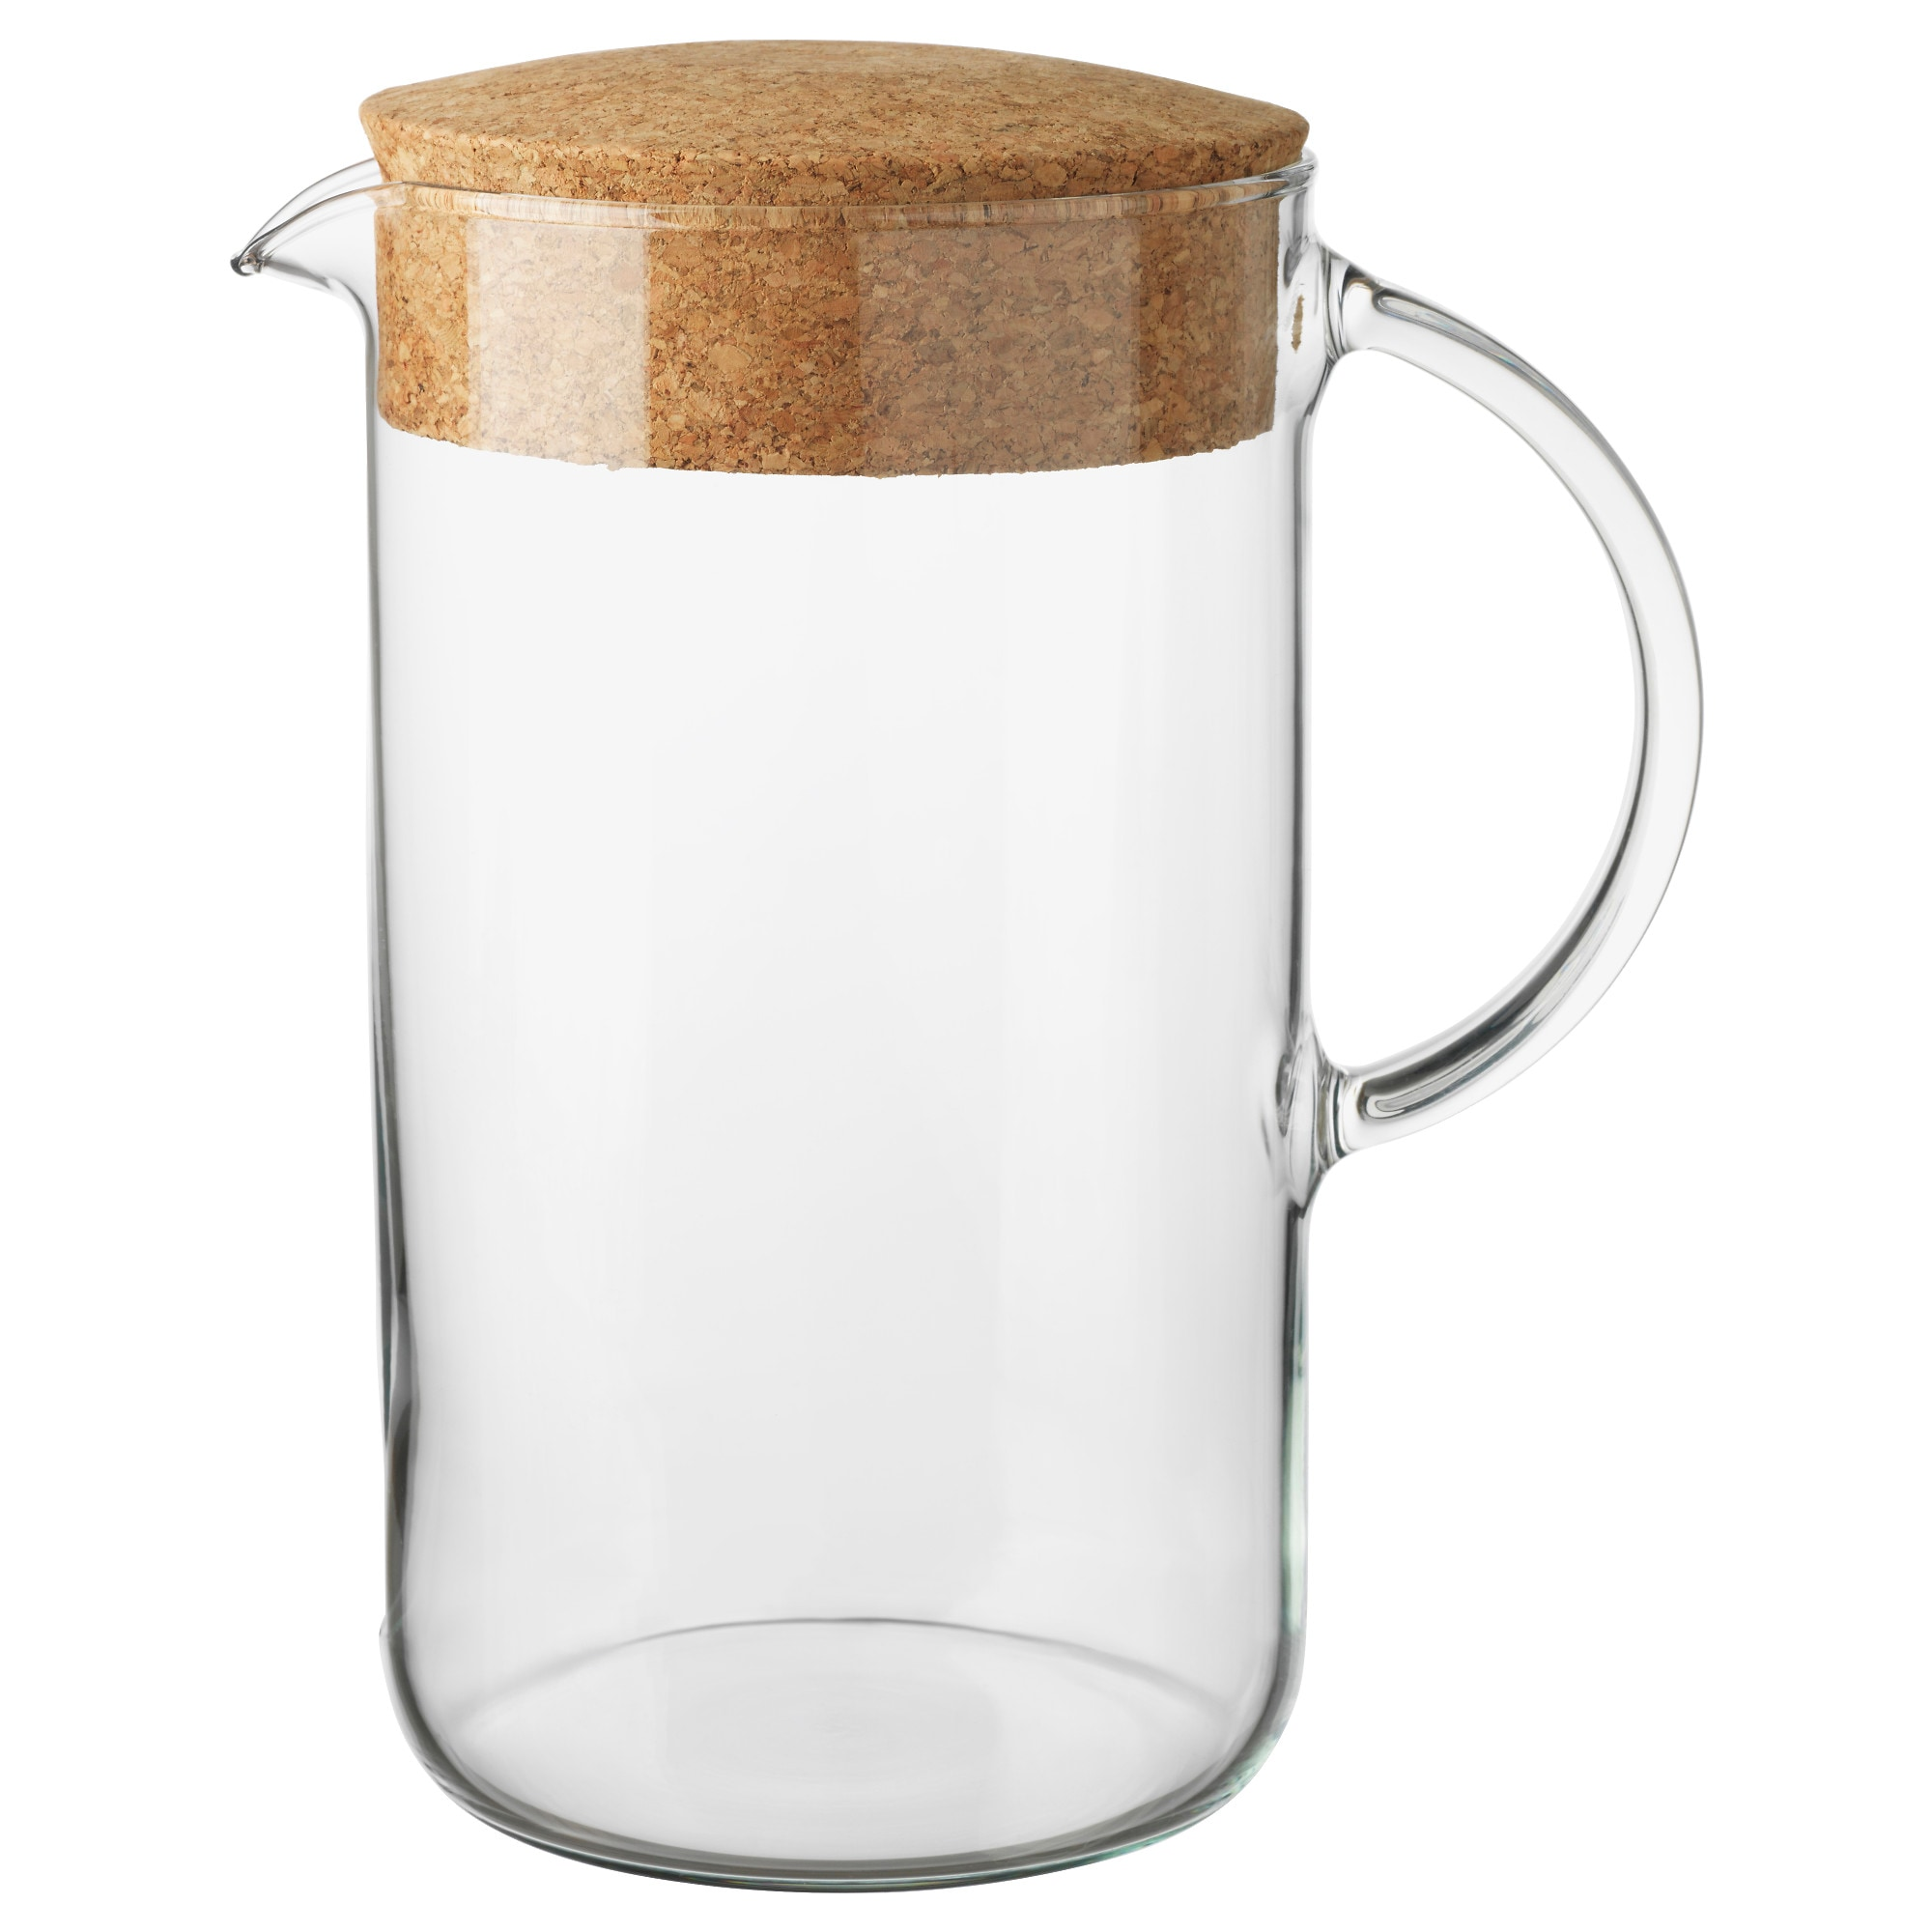 ikea  pitcher with lid  ikea -